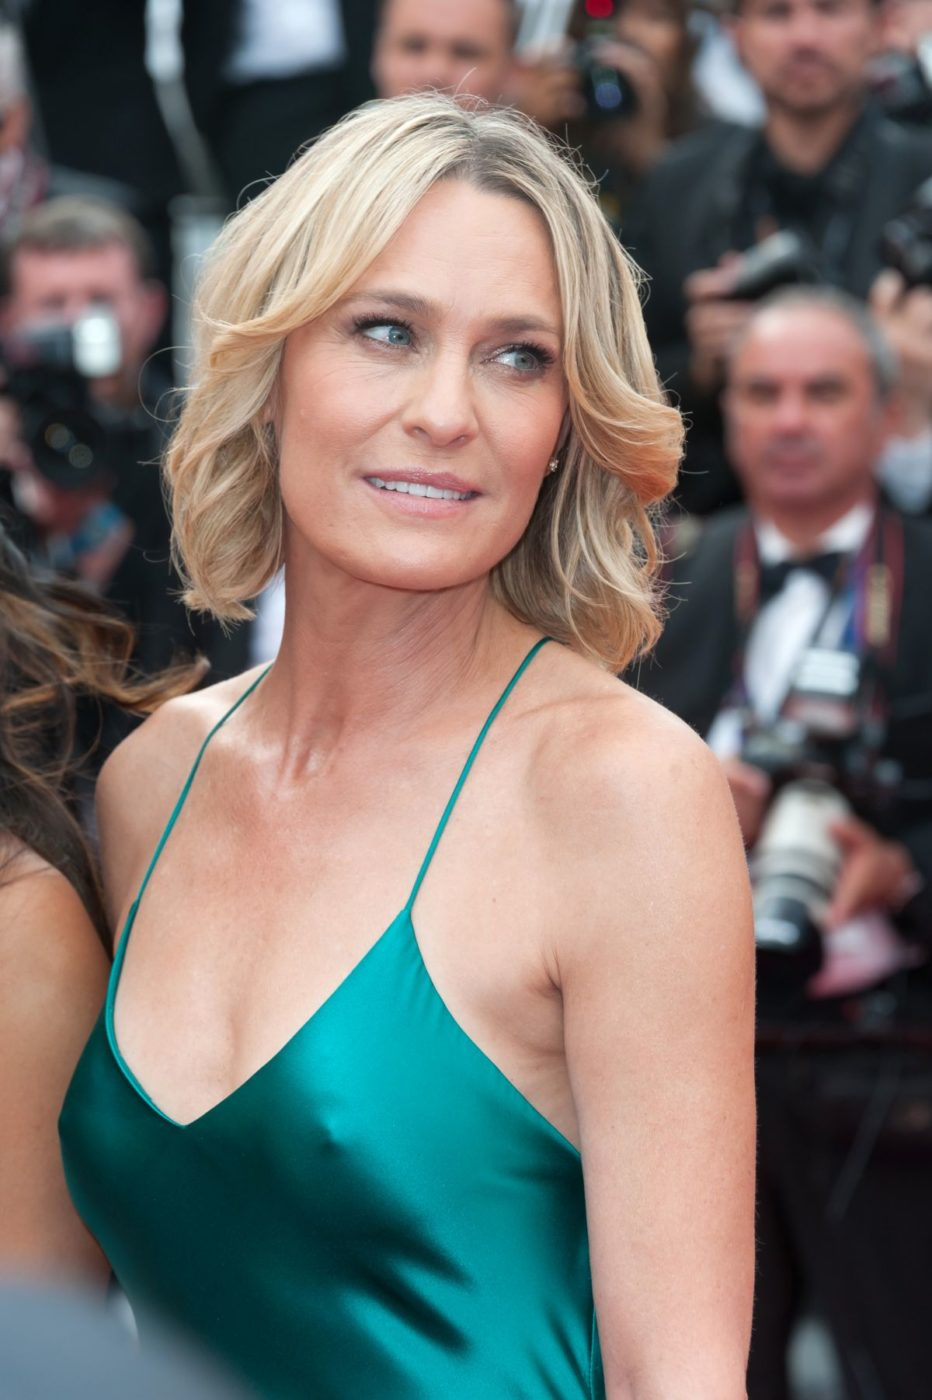 robin-wright-penn-at-cannes-film-festival-loveless-screening_3